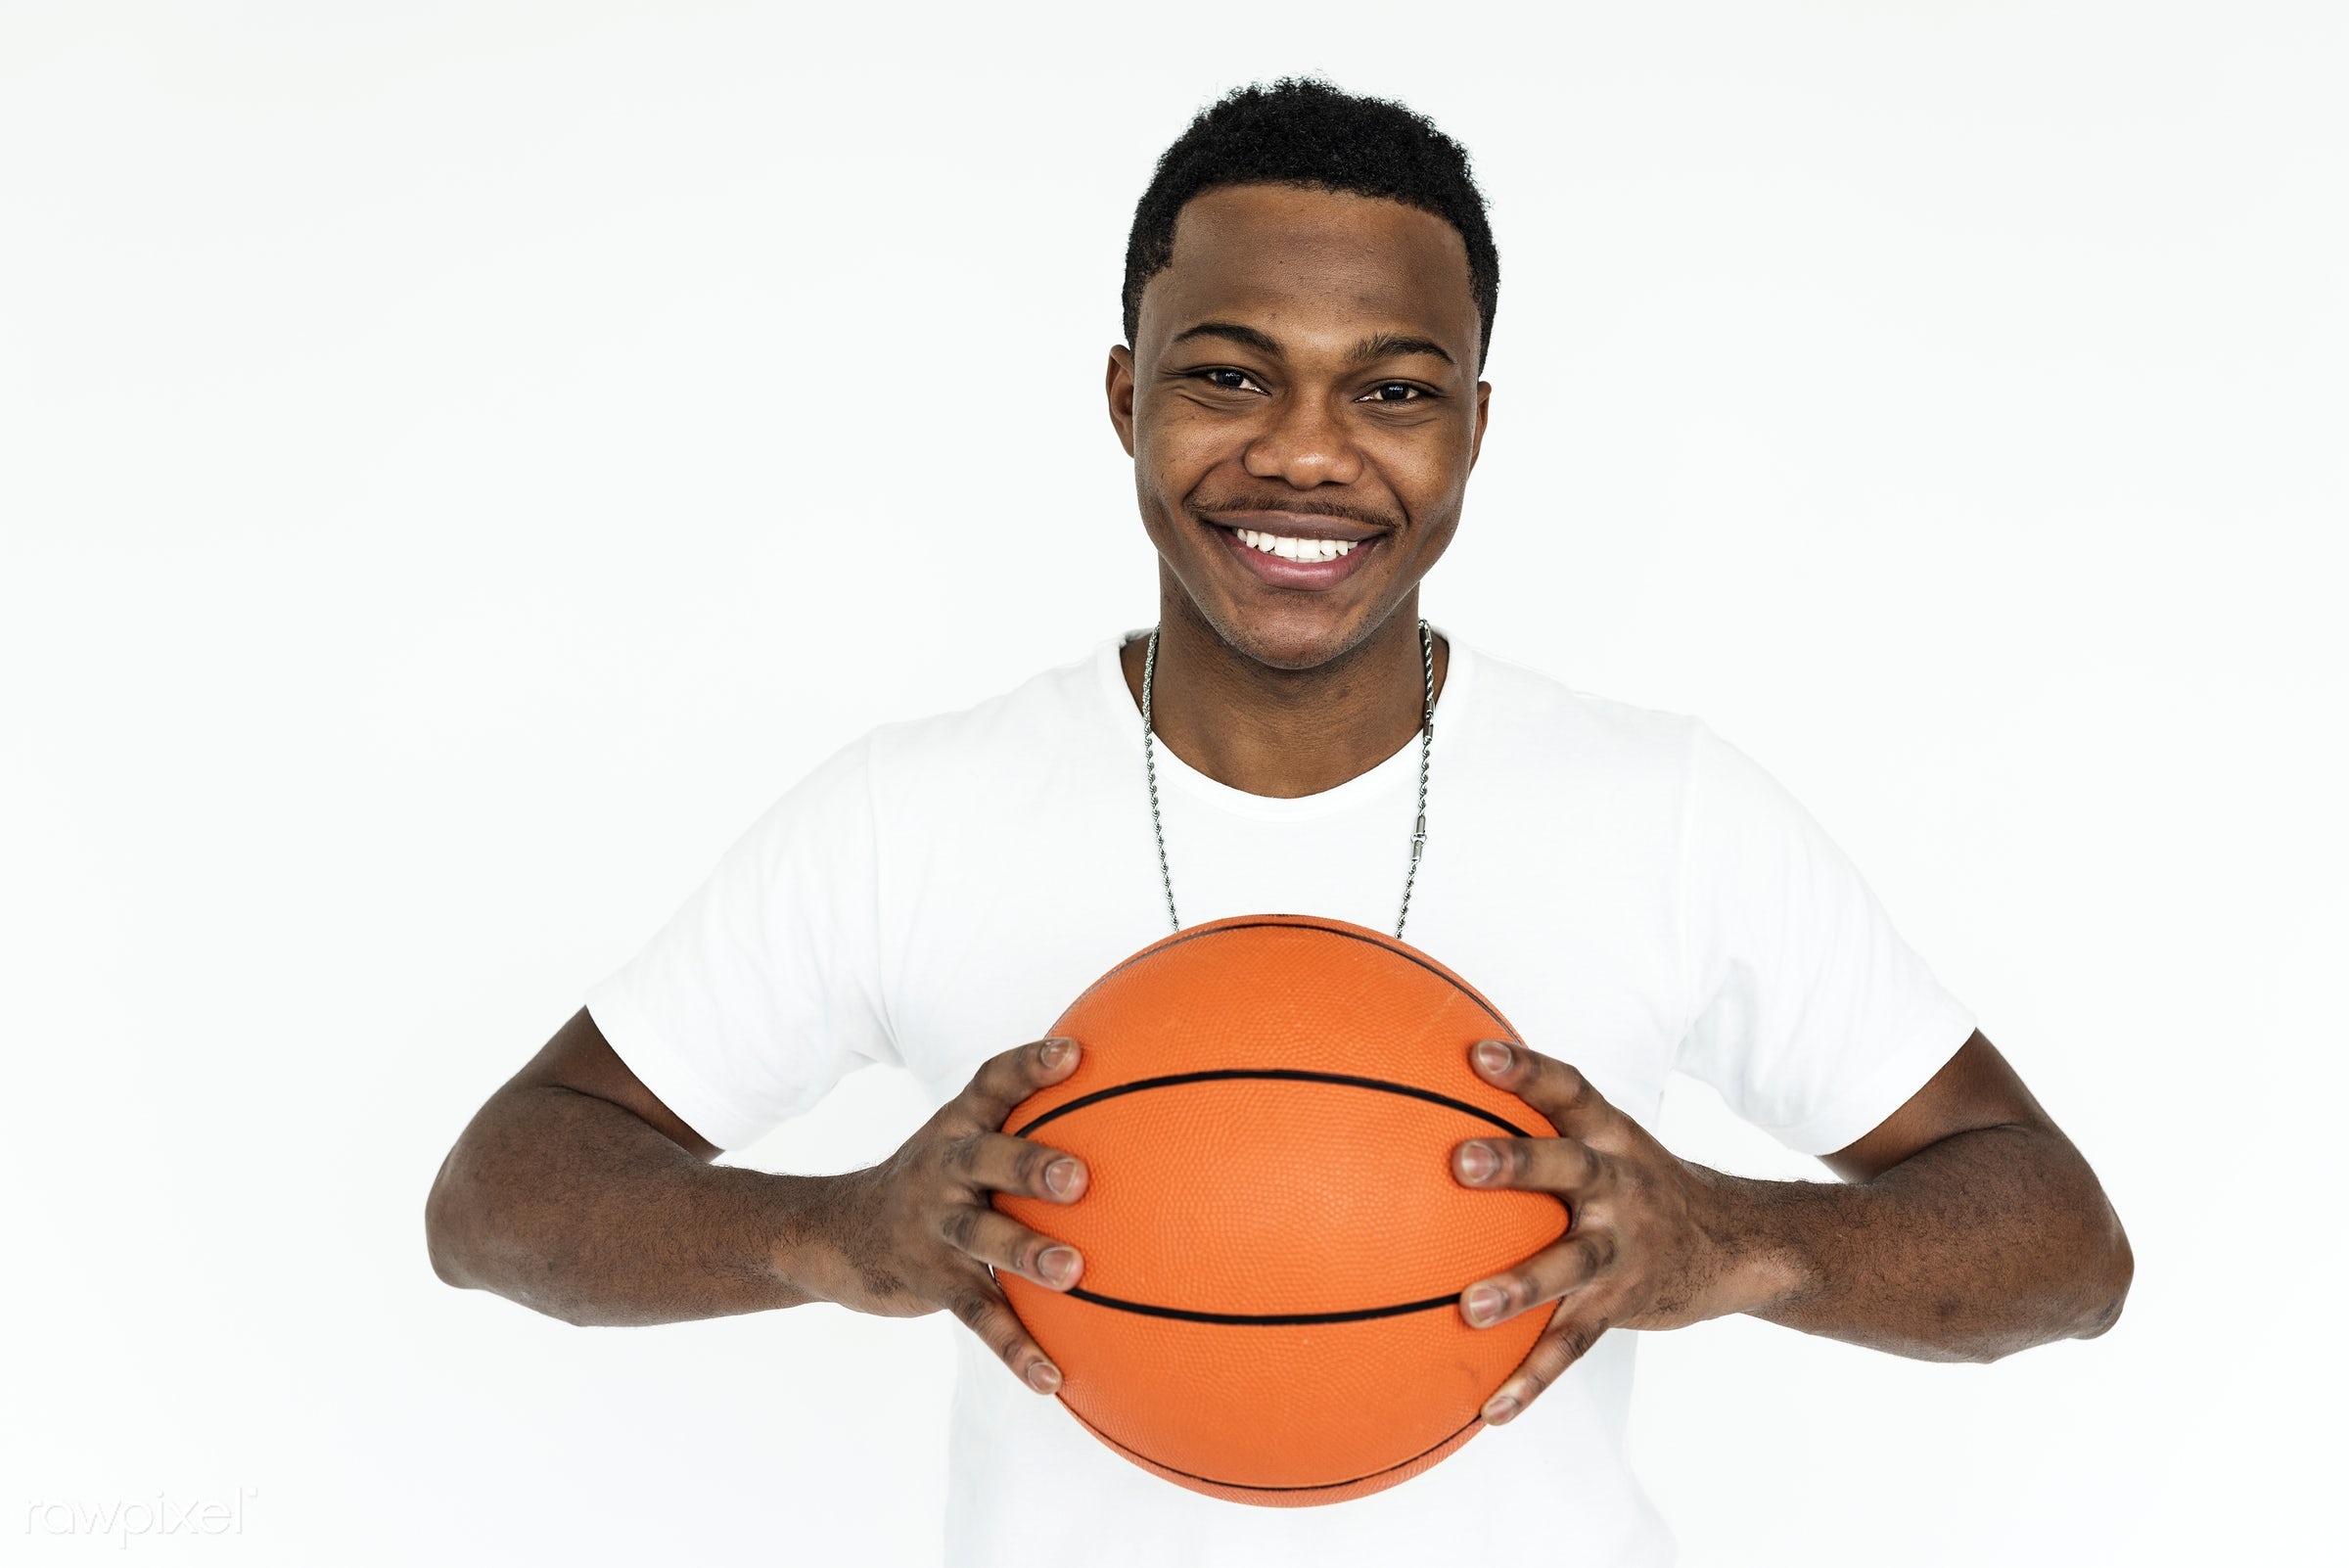 studio, basketball, expression, person, people, smile, cheerful, smiling, isolated, african descent, hobby, white, happiness...